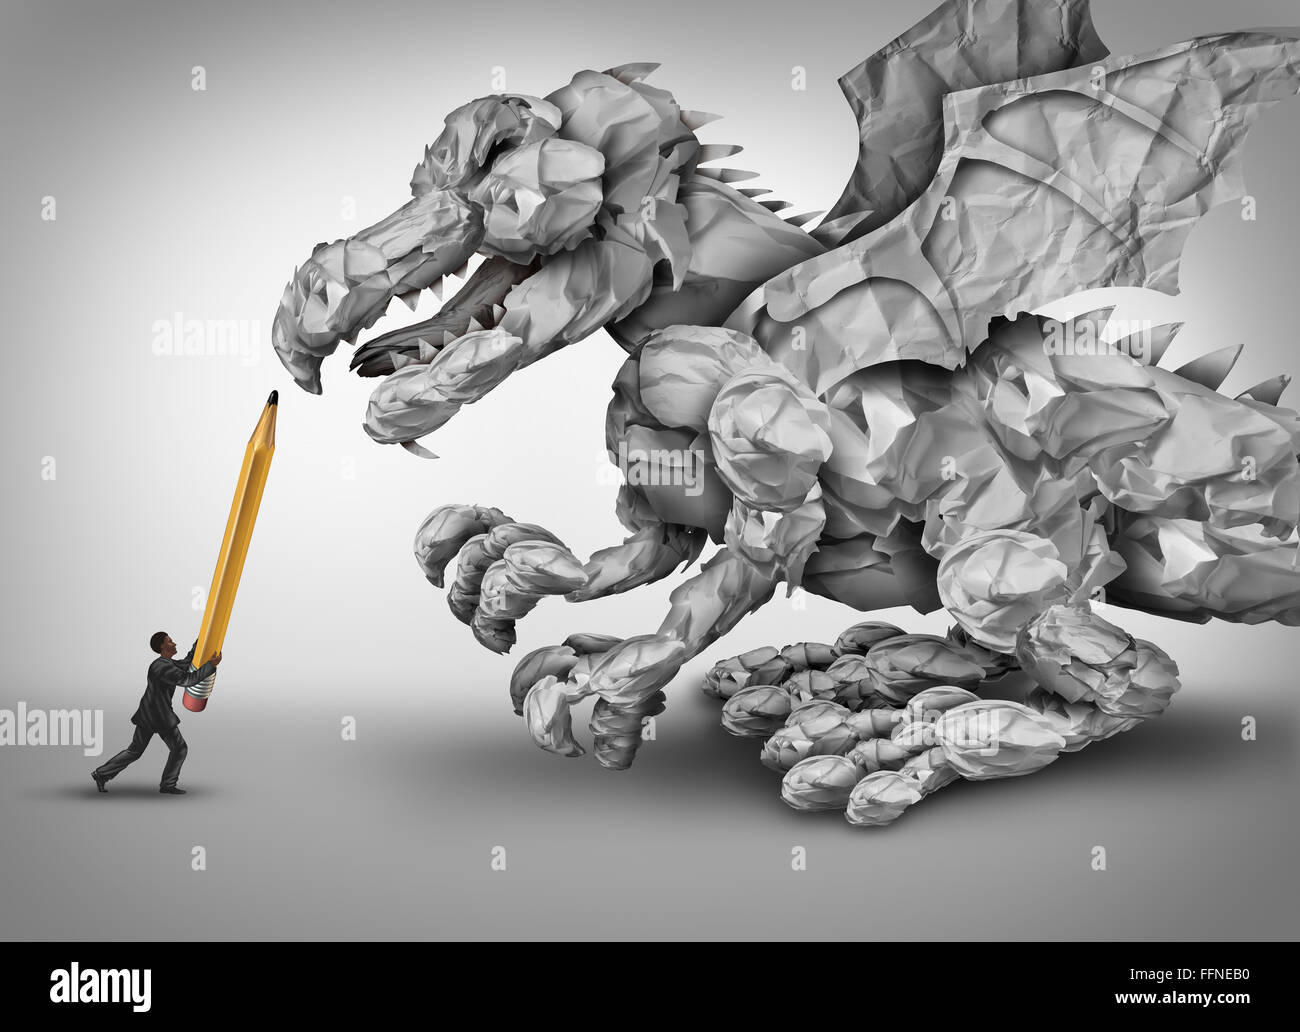 Paper stress business concept as a businessman holding a pencil fighting a dragon monster shaped with crumpled papers - Stock Image